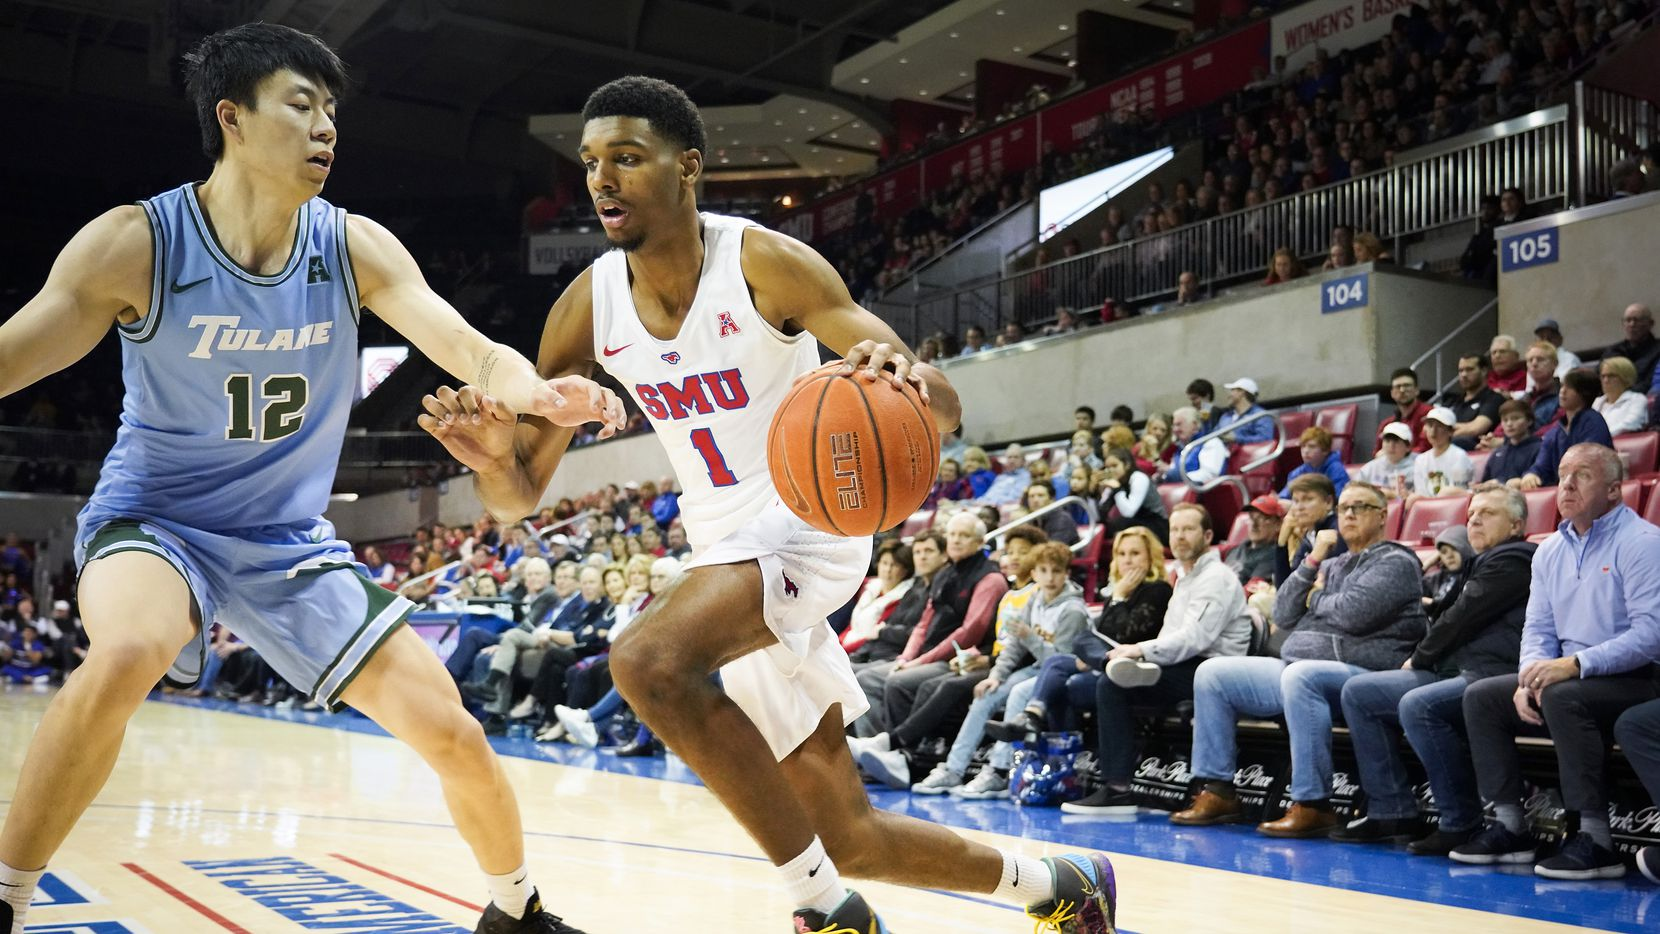 SMU forward Feron Hunt (1) dribbles around Tulane forward Kevin Zhang (12) during the second half of an NCAA basketball game at Moody Coliseum on Saturday, Feb. 1, 2020, in Dallas. SMU won the game 82-67.